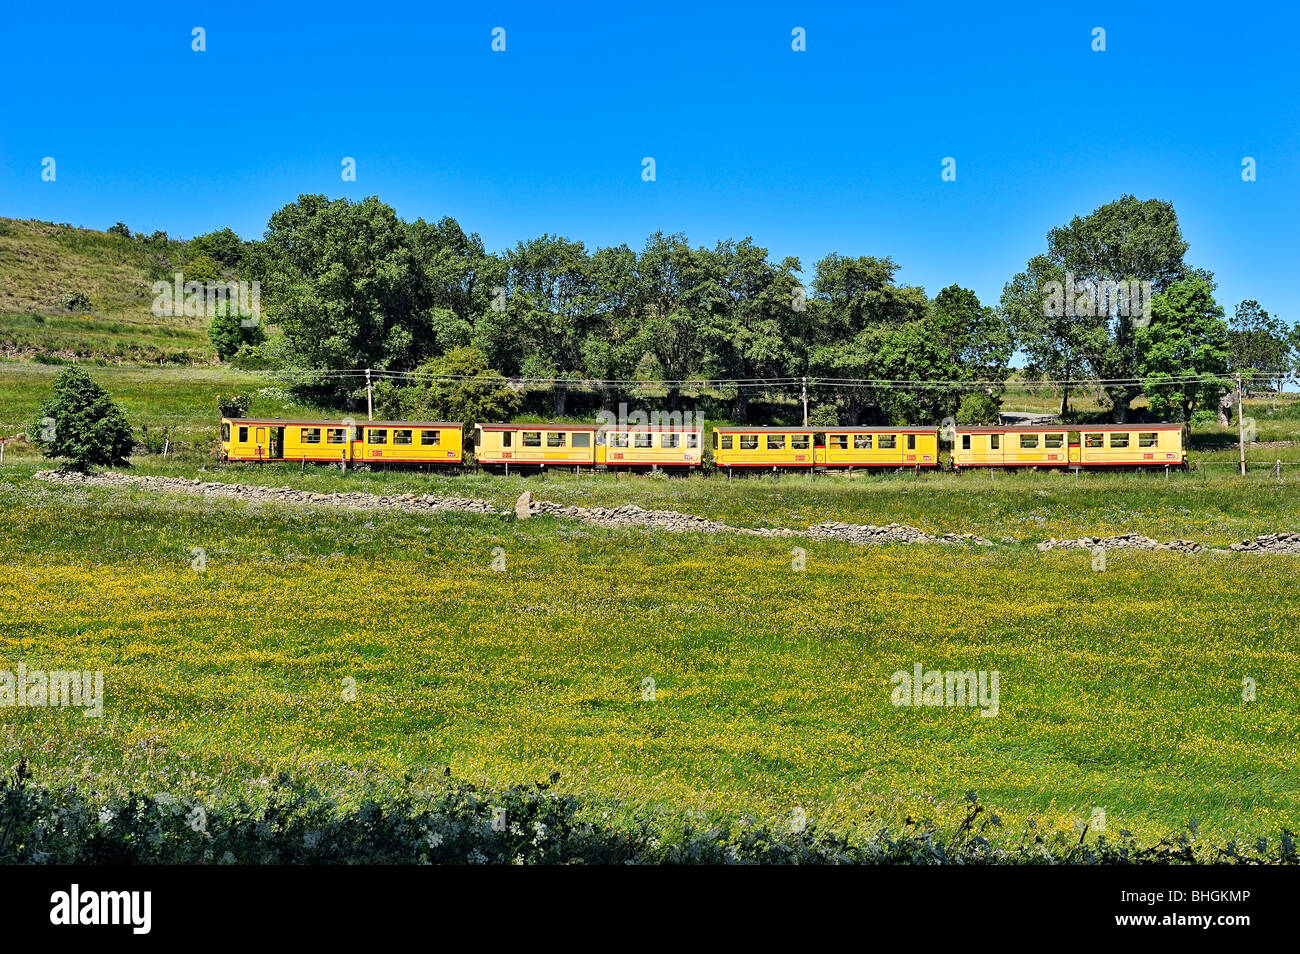 Treno jaune in Pyreneans montagne, Languedoc Roussillon, Francia. Immagini Stock